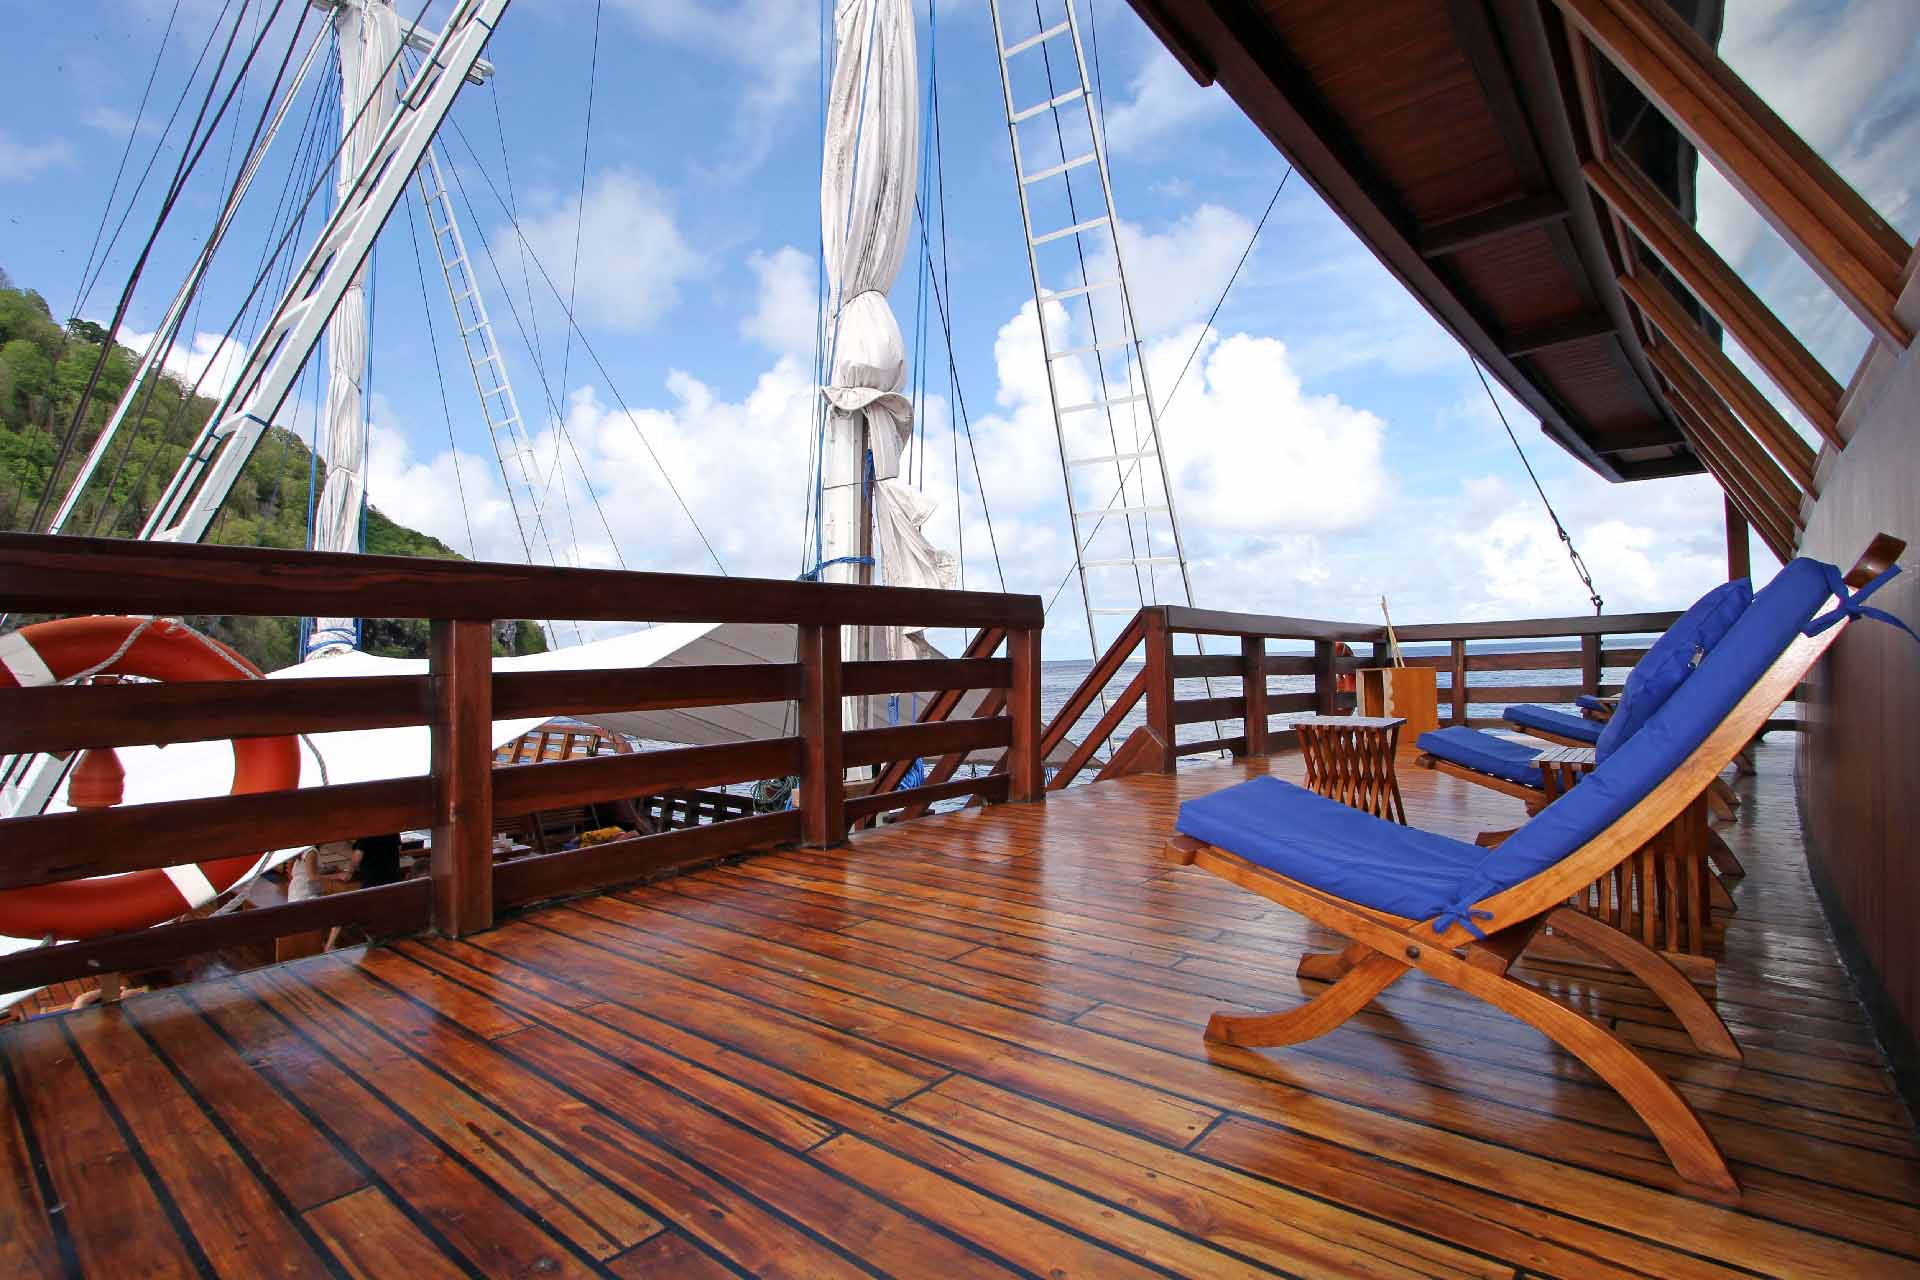 View of Amira Liveaboard from the top deck